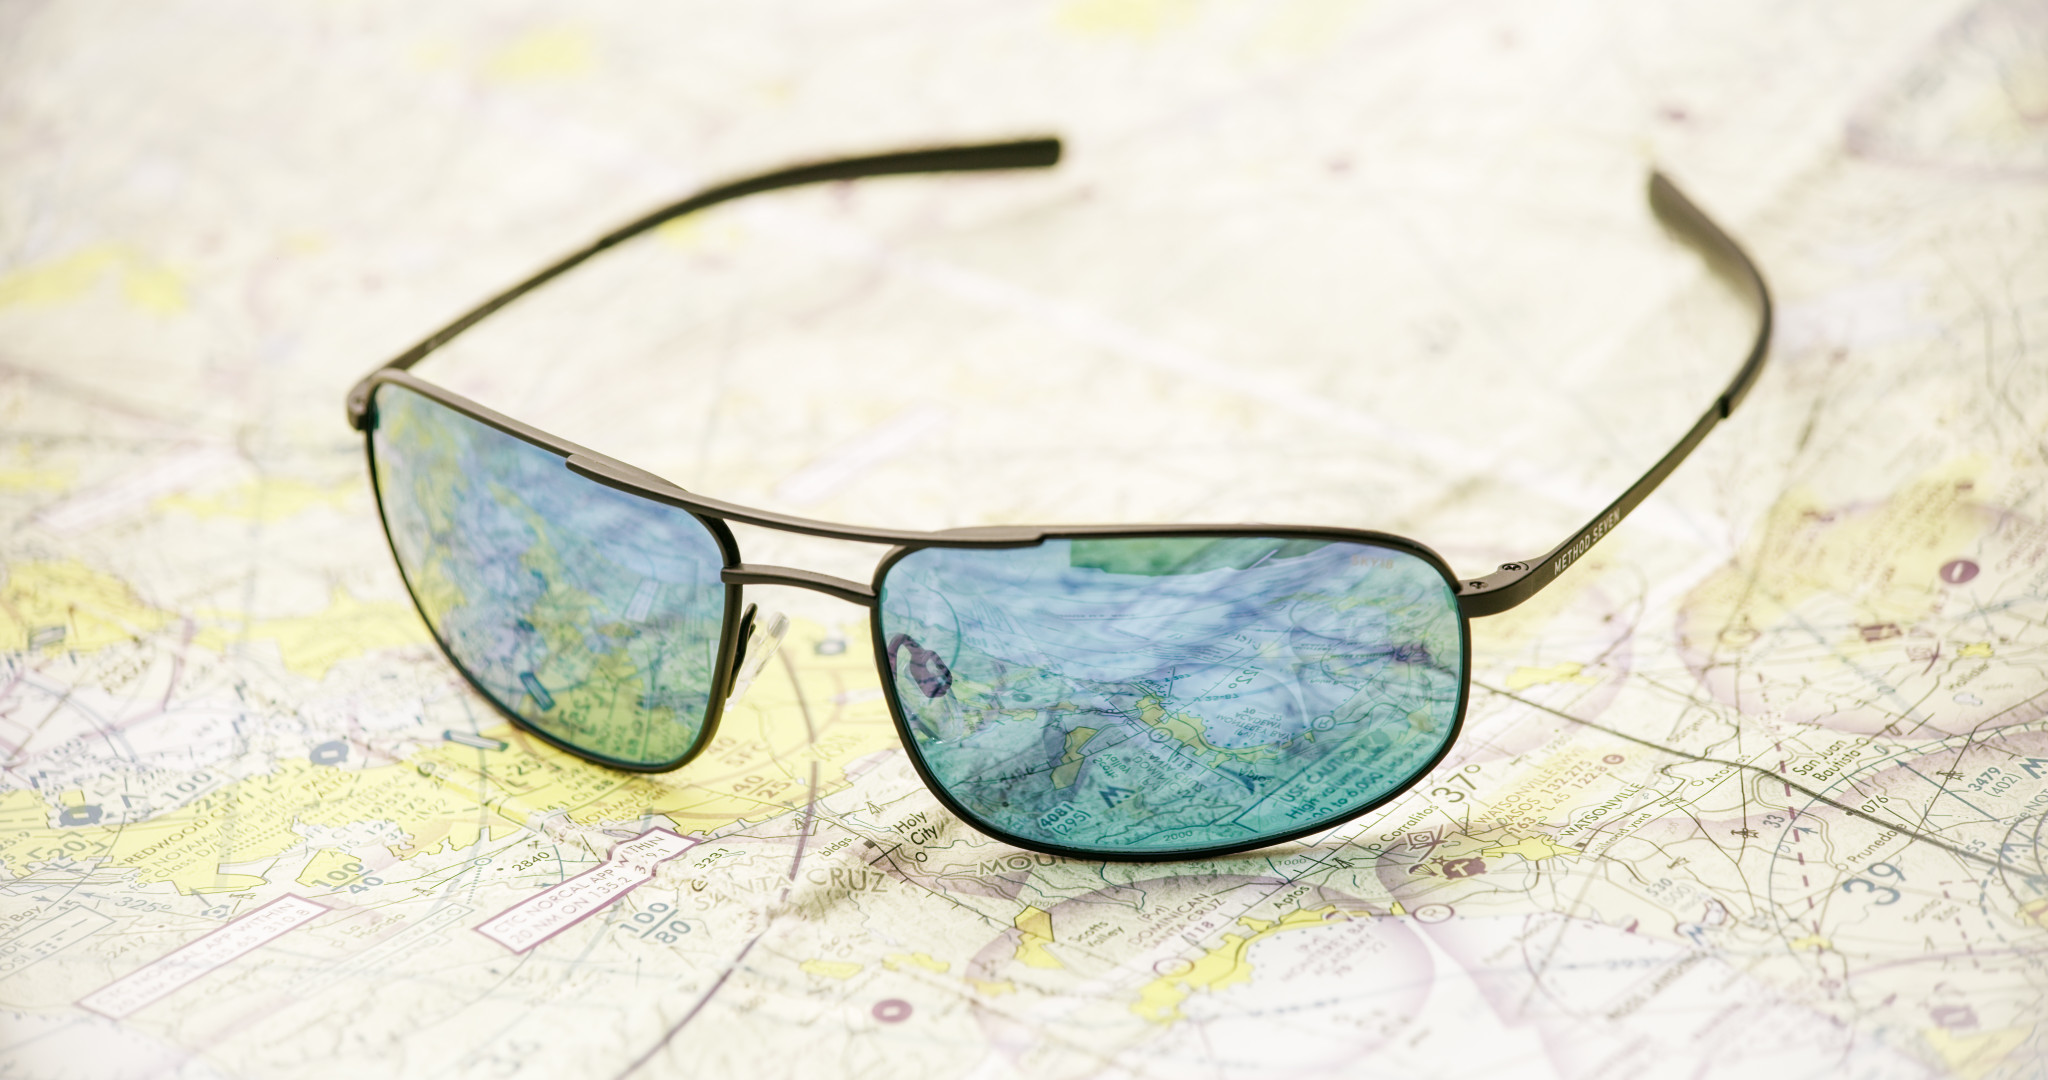 A Pilot's Guide To Picking The Best Aviation Sunglasses